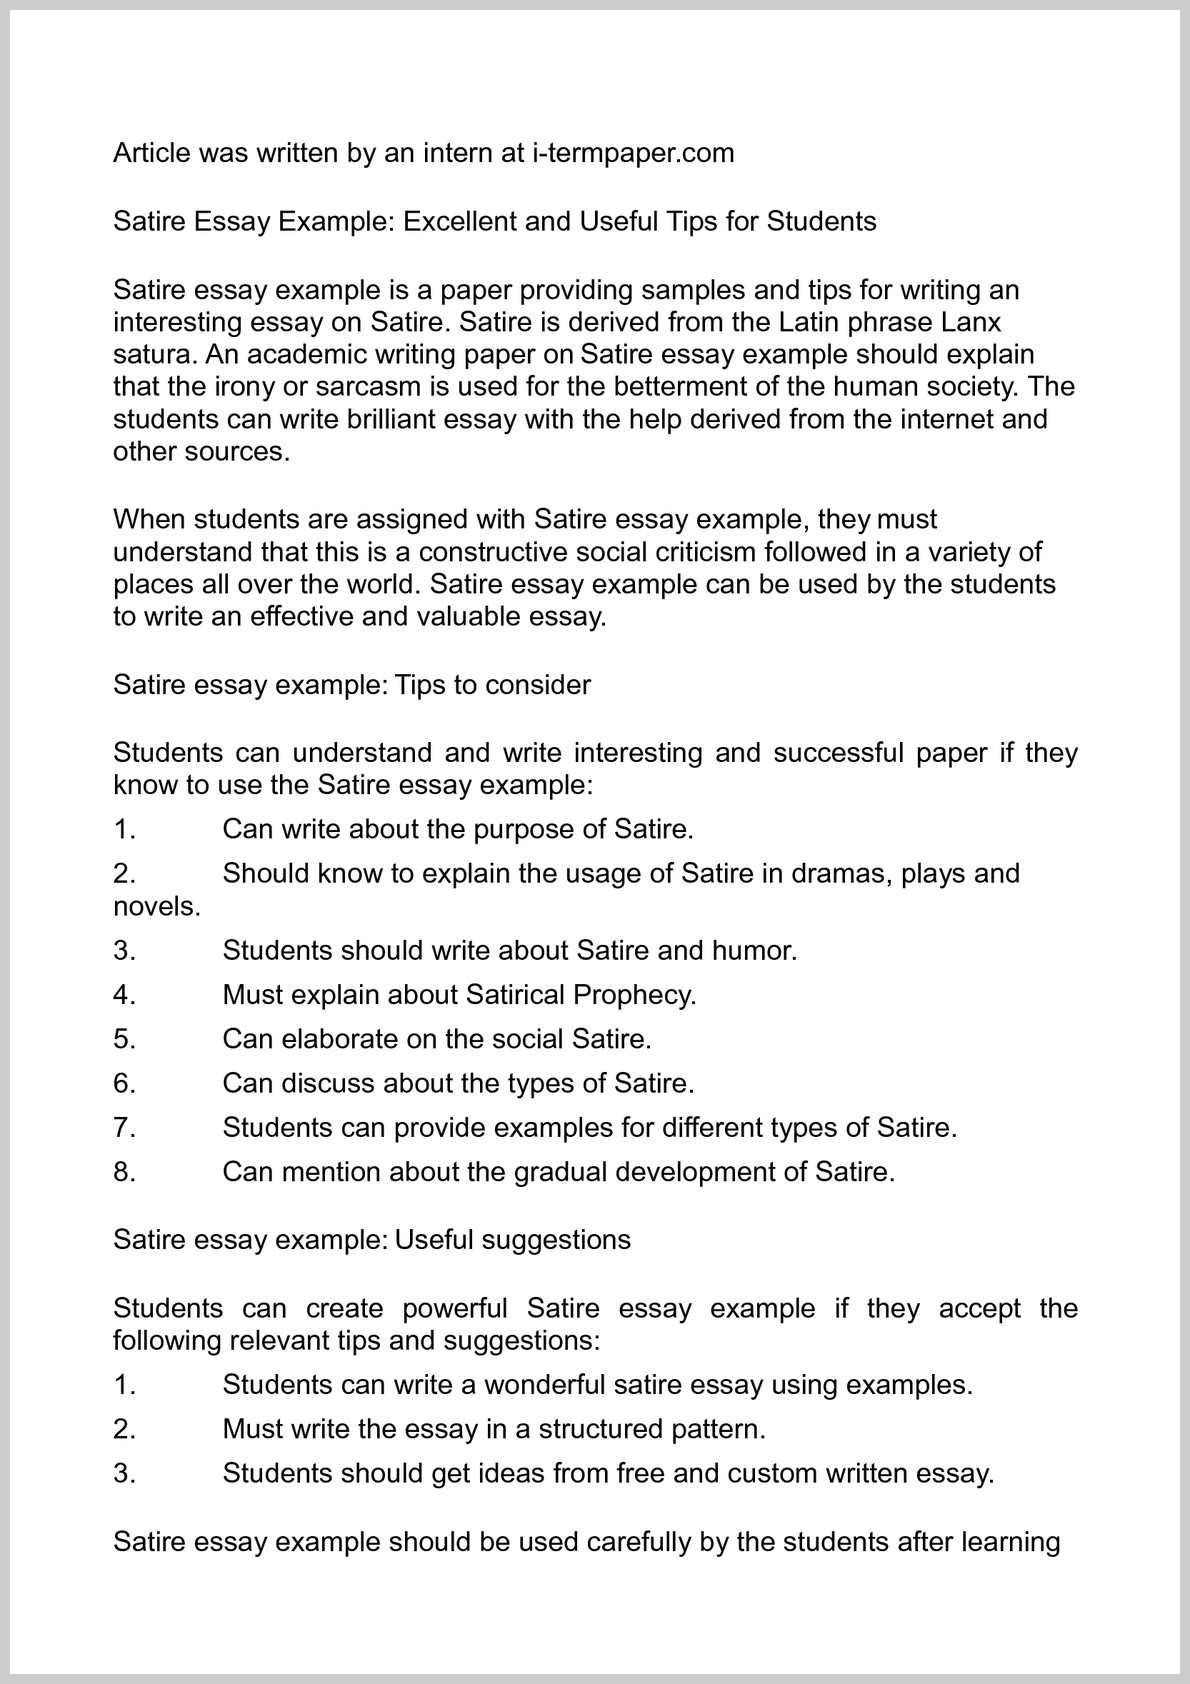 014 Essay Satiric Negative Impacts Of Social Media The Best Writing Satirical Topics Frightening Good Topic Ideas Full